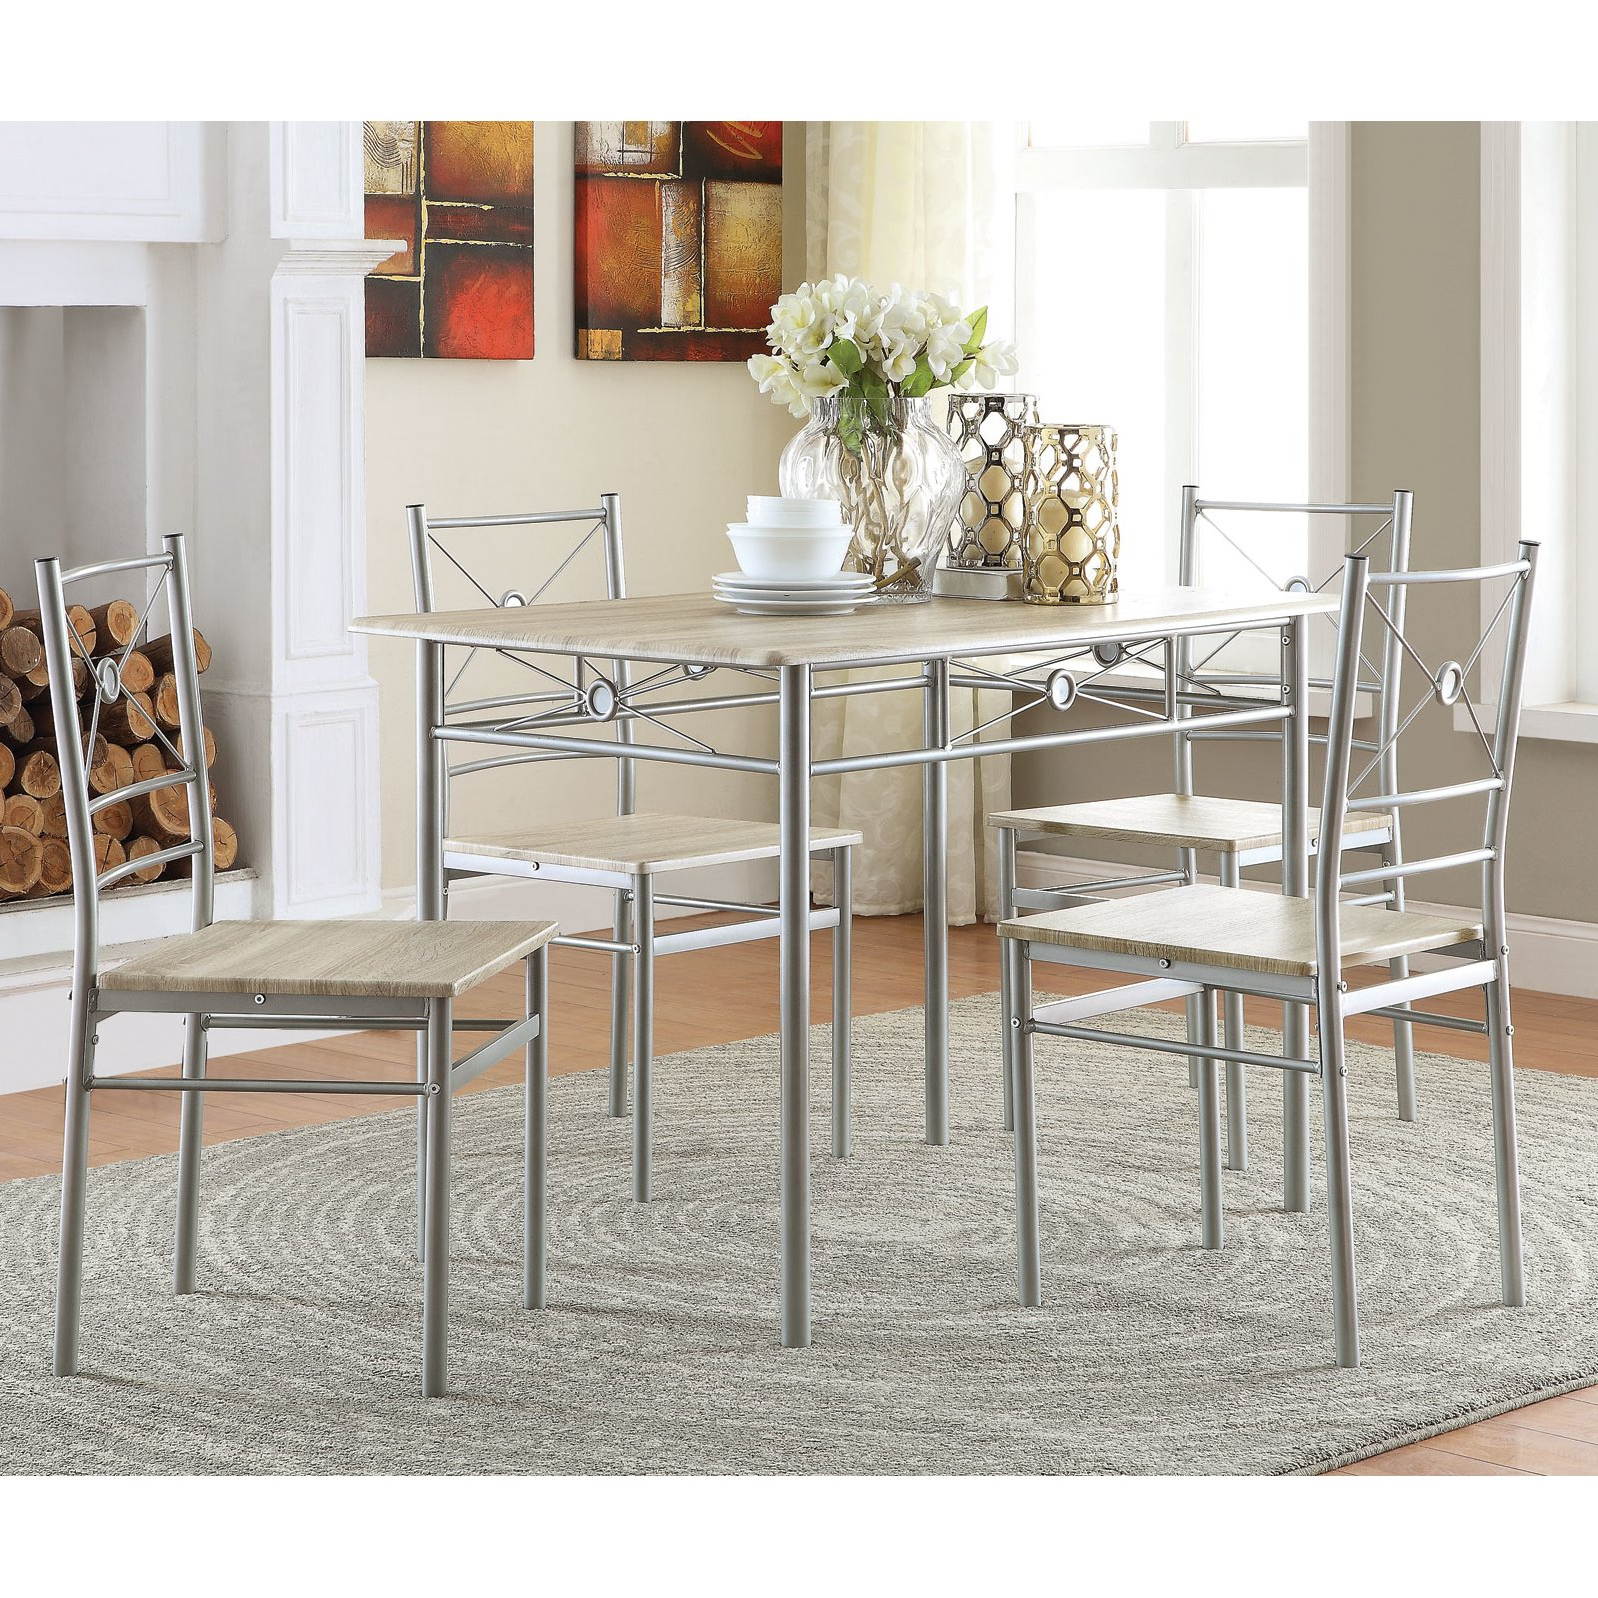 Famous Kieffer 5 Piece Dining Table And Chairs Beautiful Kitchen Room With Kieffer 5 Piece Dining Sets (View 8 of 25)